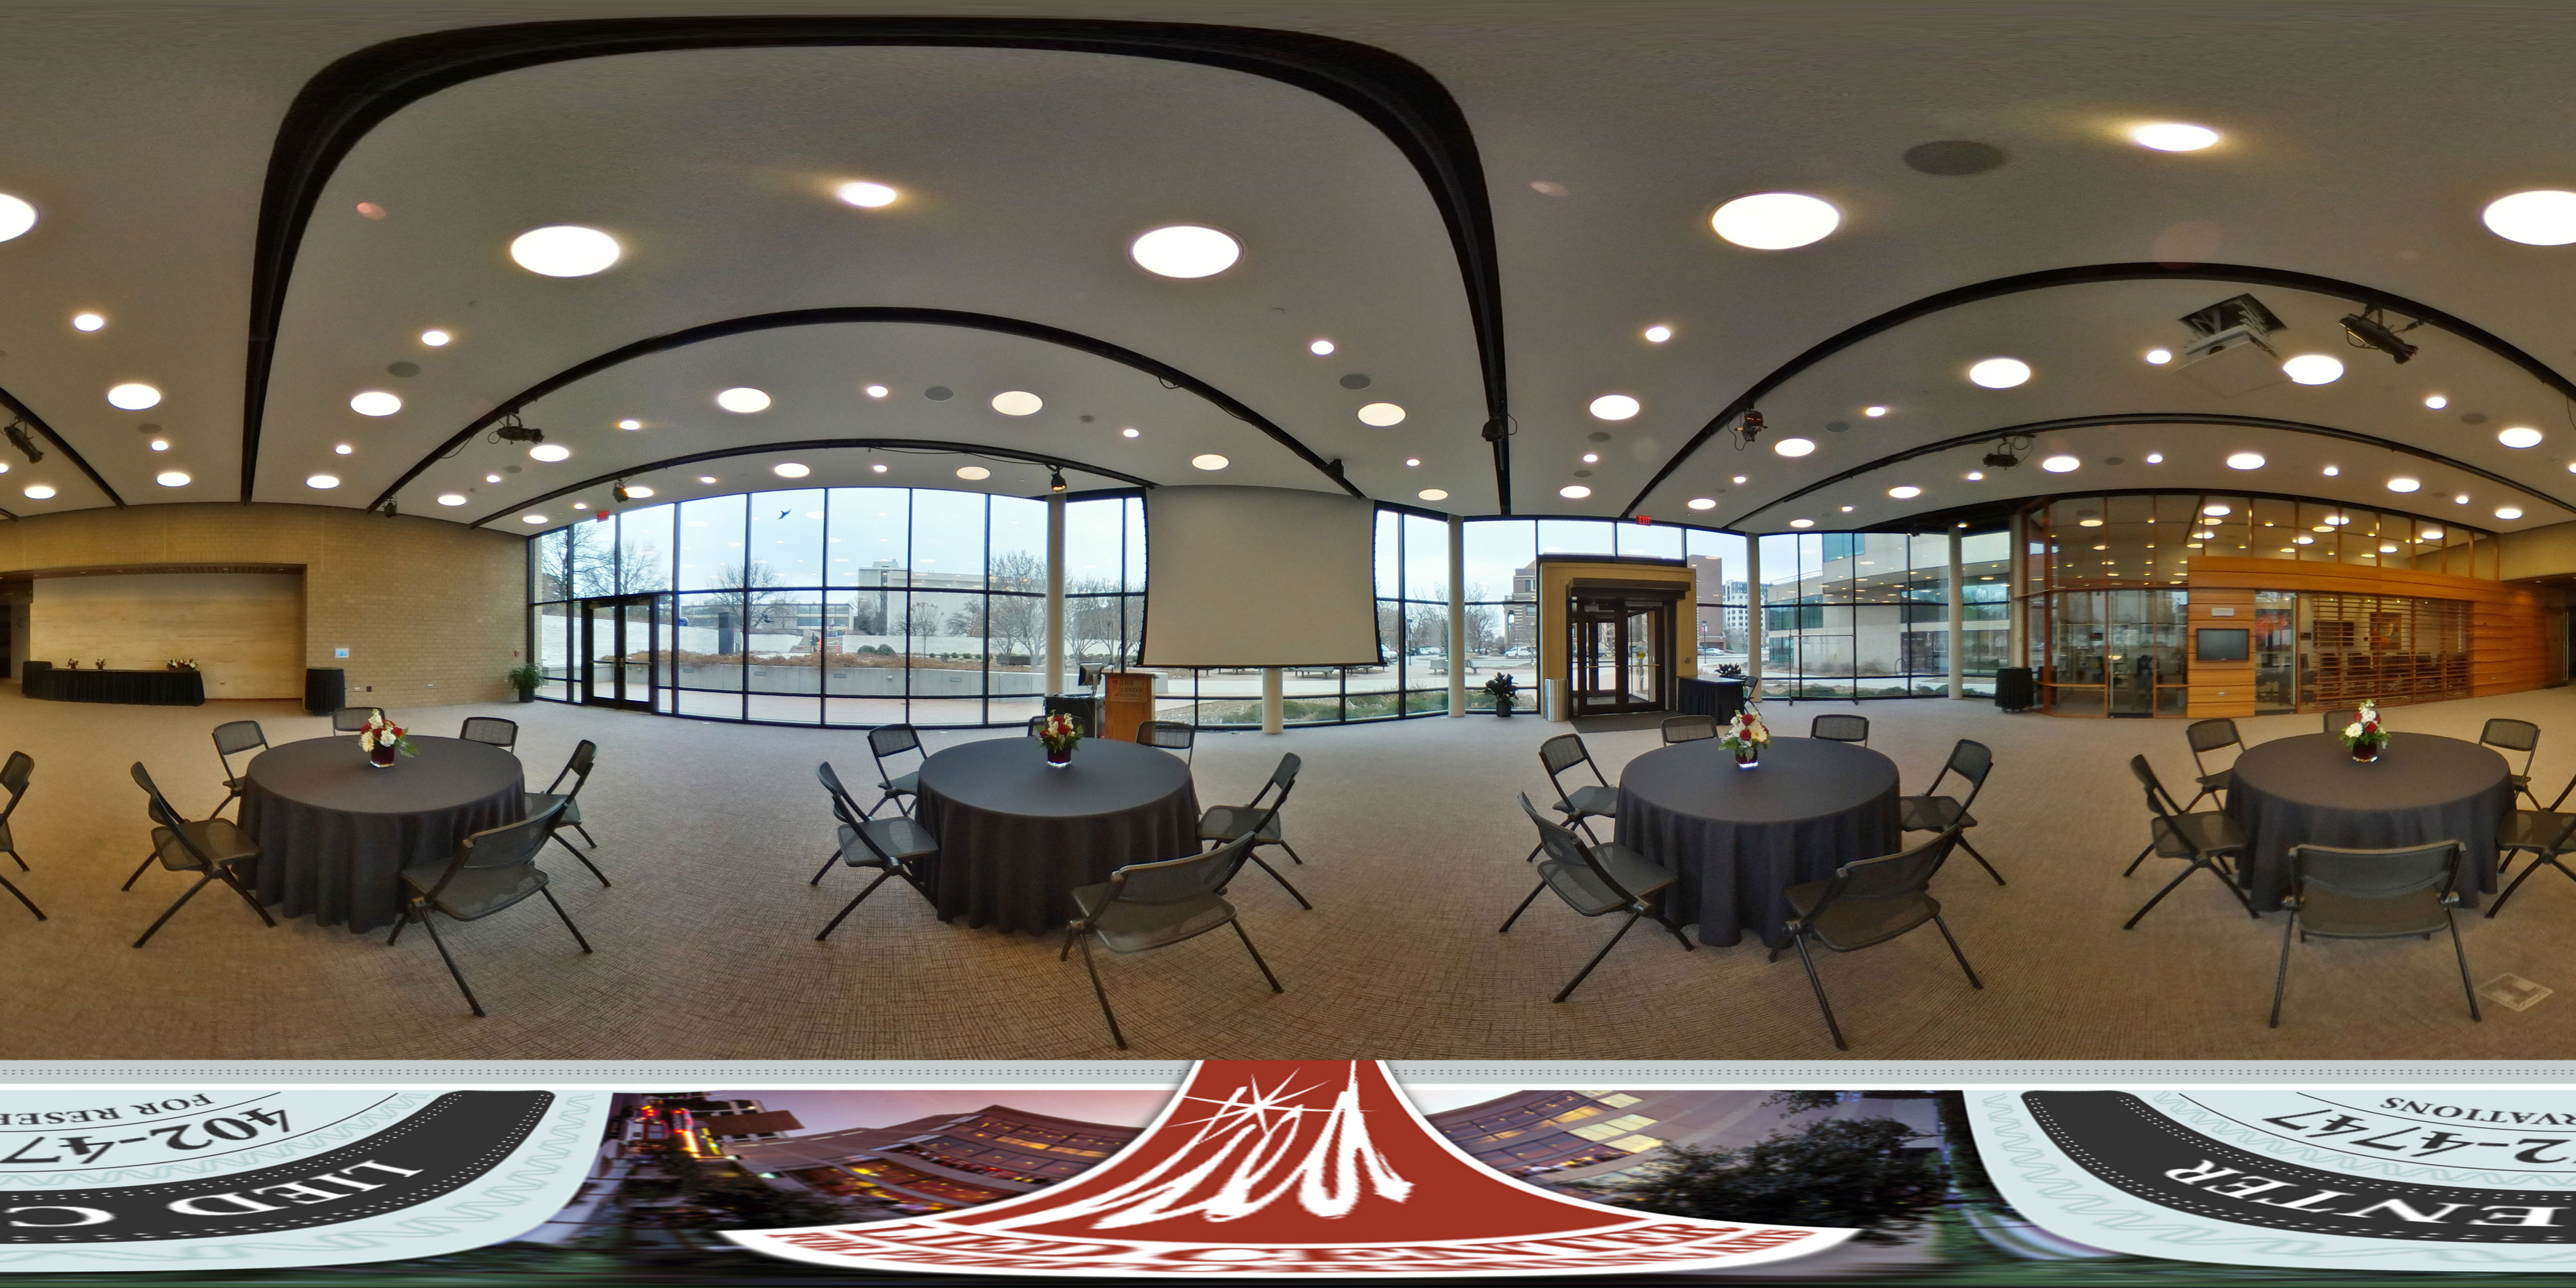 Virtual tour of the Lied Commons showing a banquet setup featuring round tables with black tablecloths and chairs and red and white flowers.